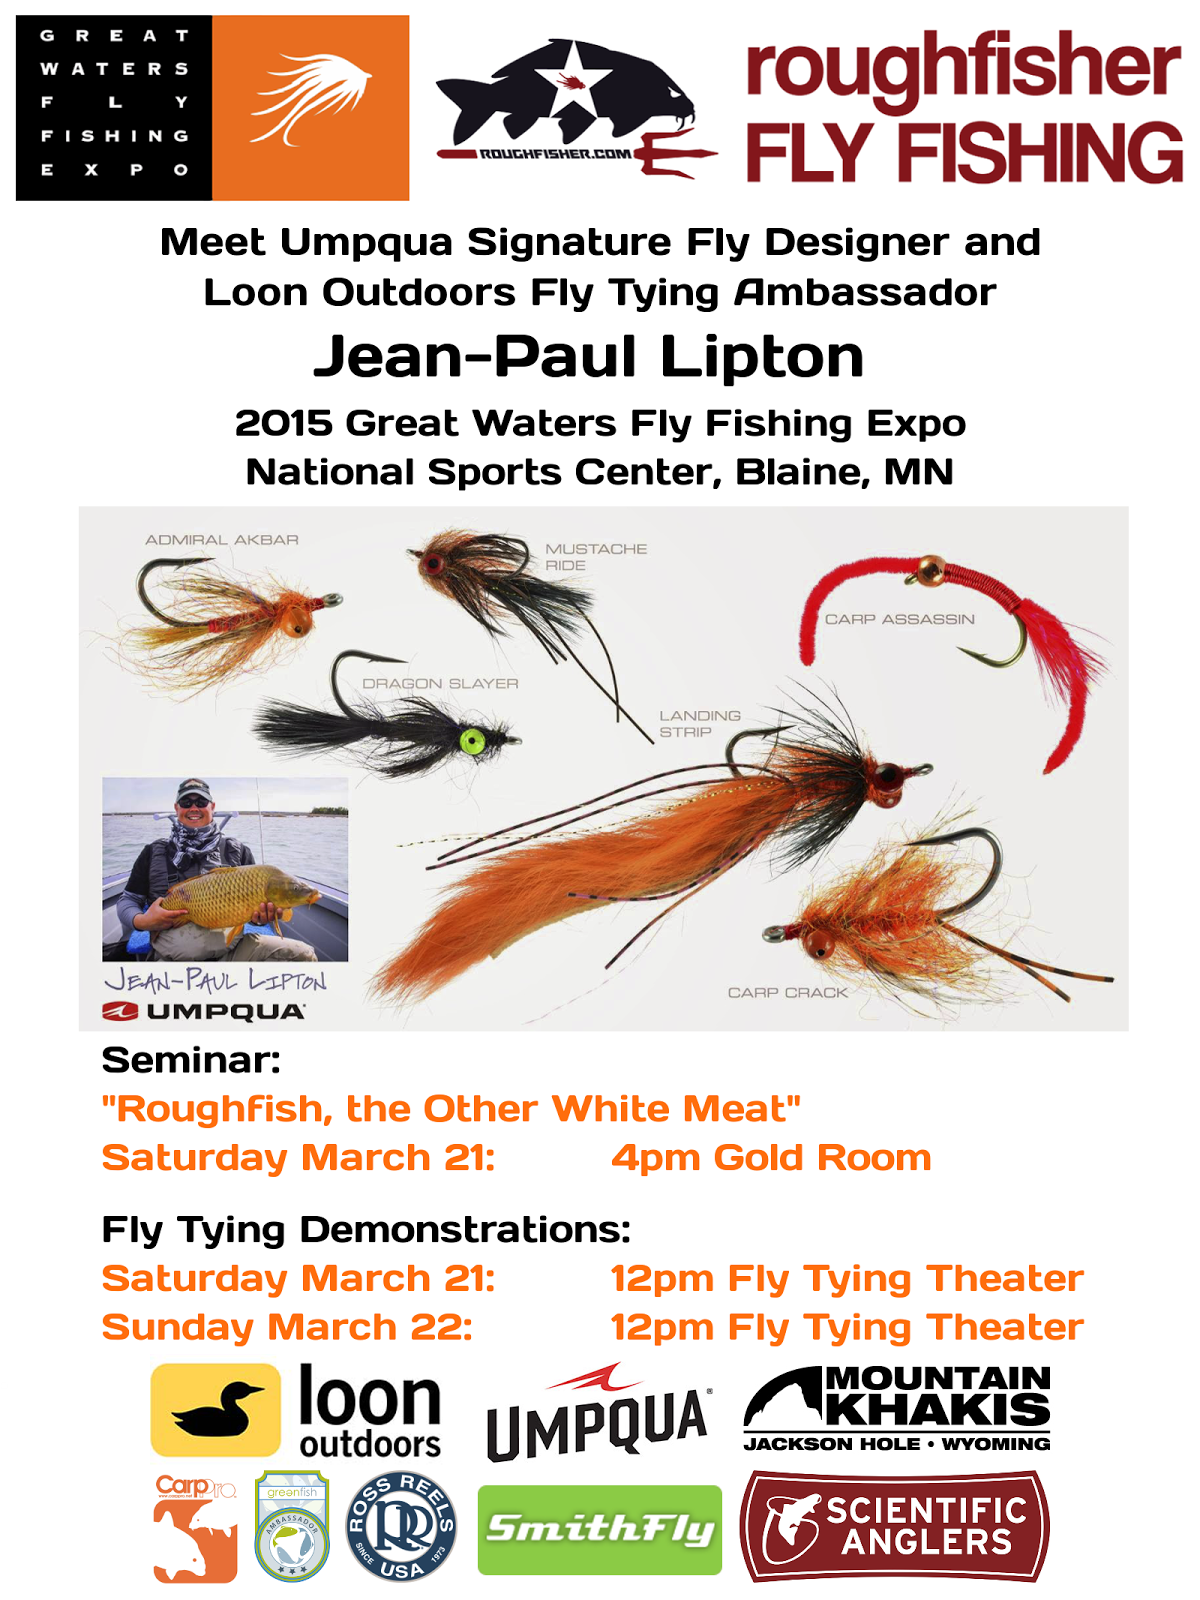 Jean-Paul Lipton at 2015 Great Waters Fly Fishing Expo